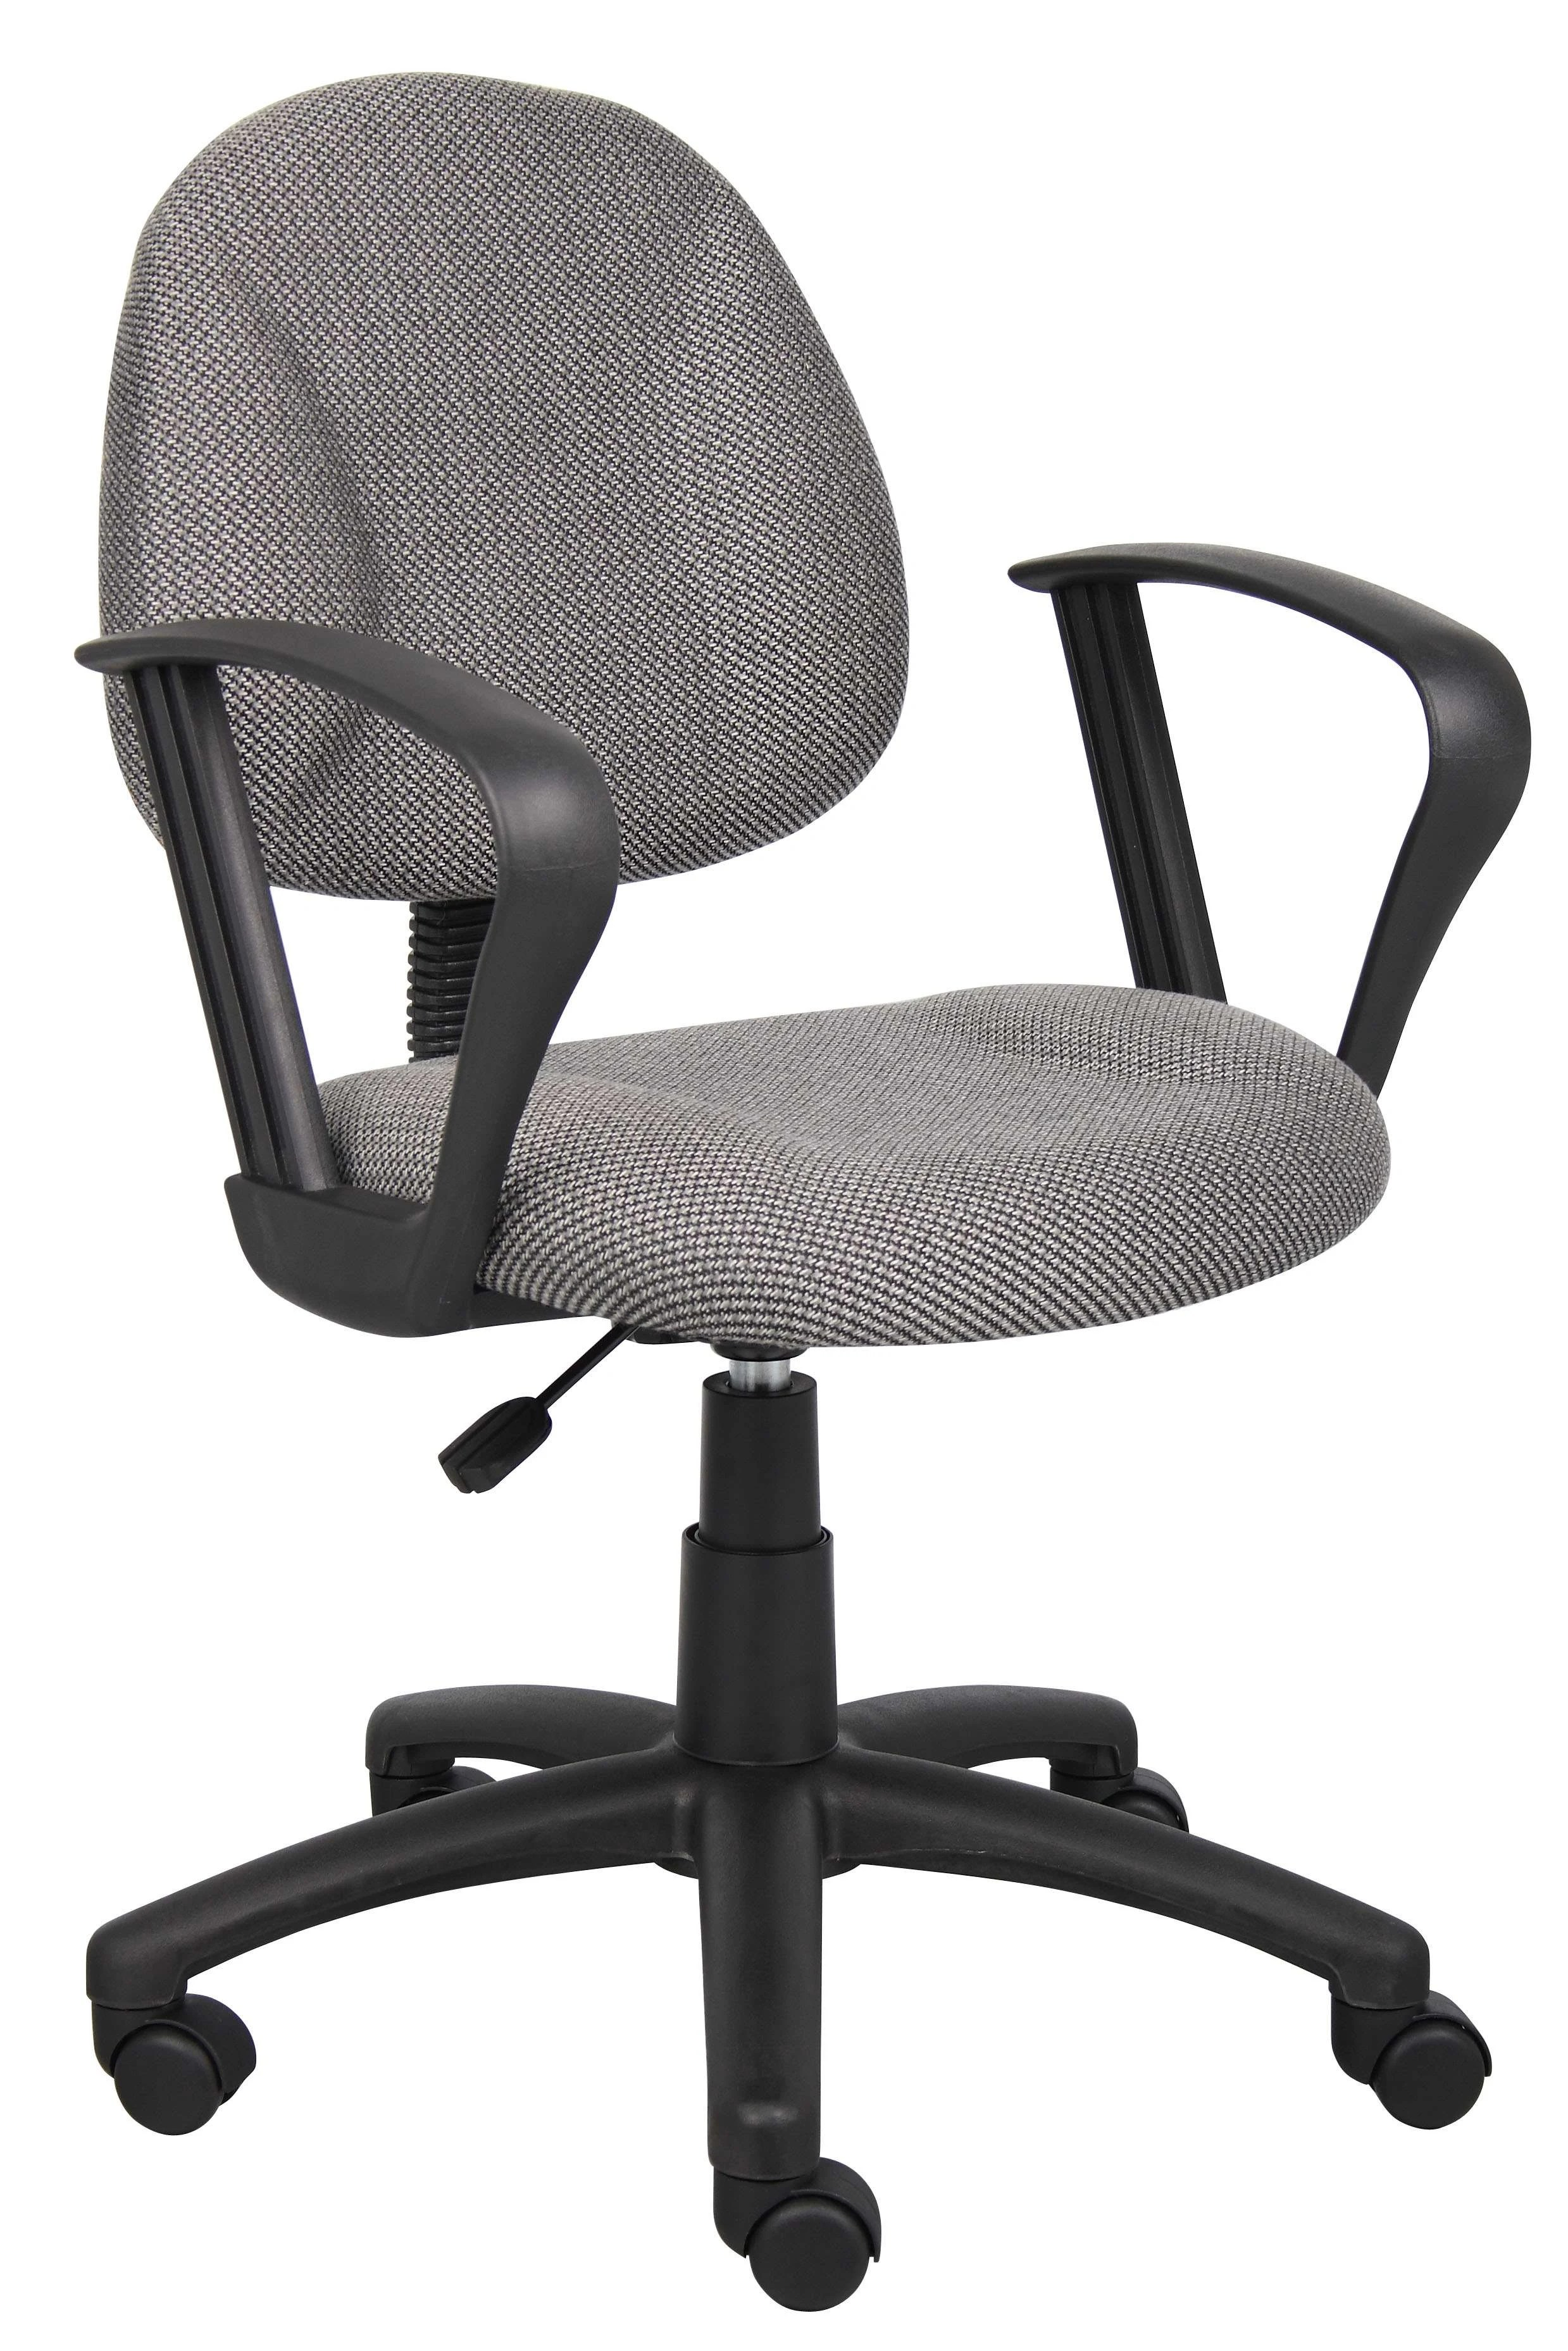 posture monitoring chair chaise lounger boss office products gray deluxe with loop